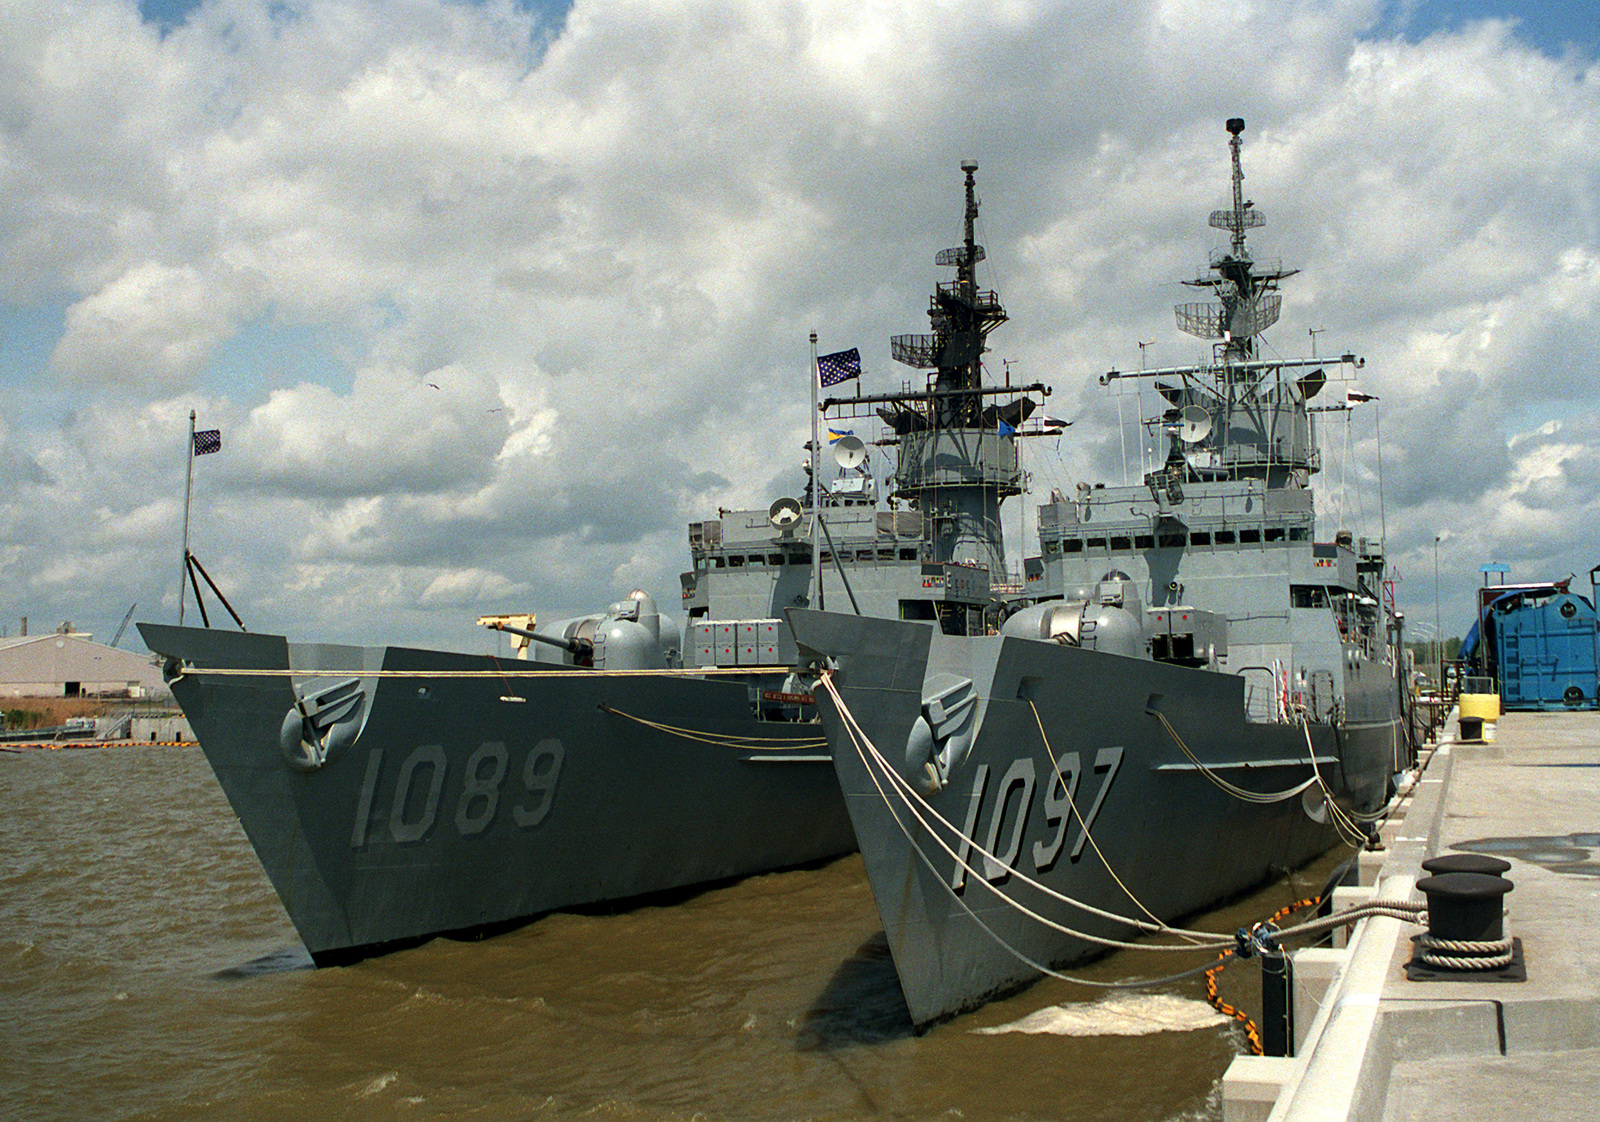 The frigate USS MOINESTER (FF-1097) and USS JESSE L. BROWN (FF-1089) are moored together at a pier at a Mobile shipyard